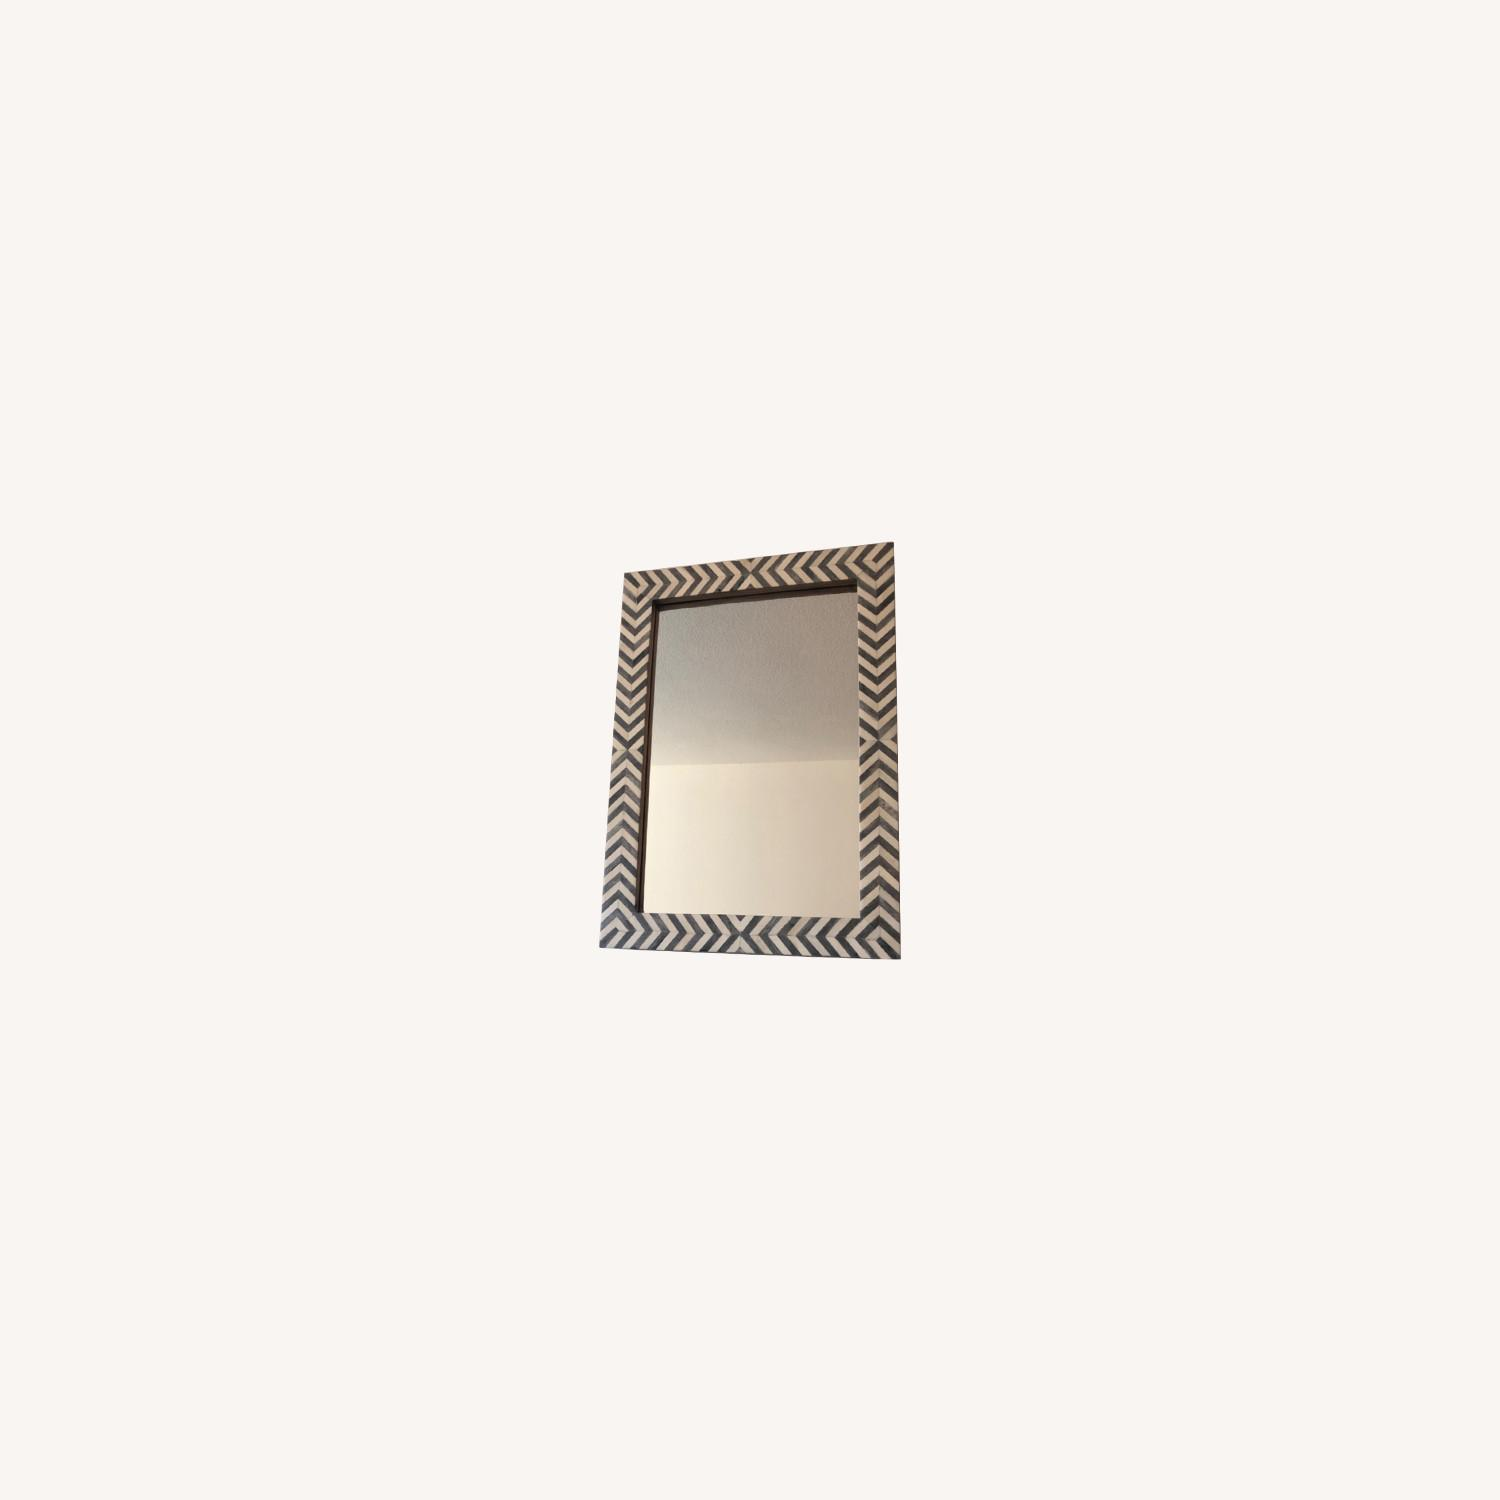 West Elm Parsons Wall Mirror, Gray Herringbone - image-0